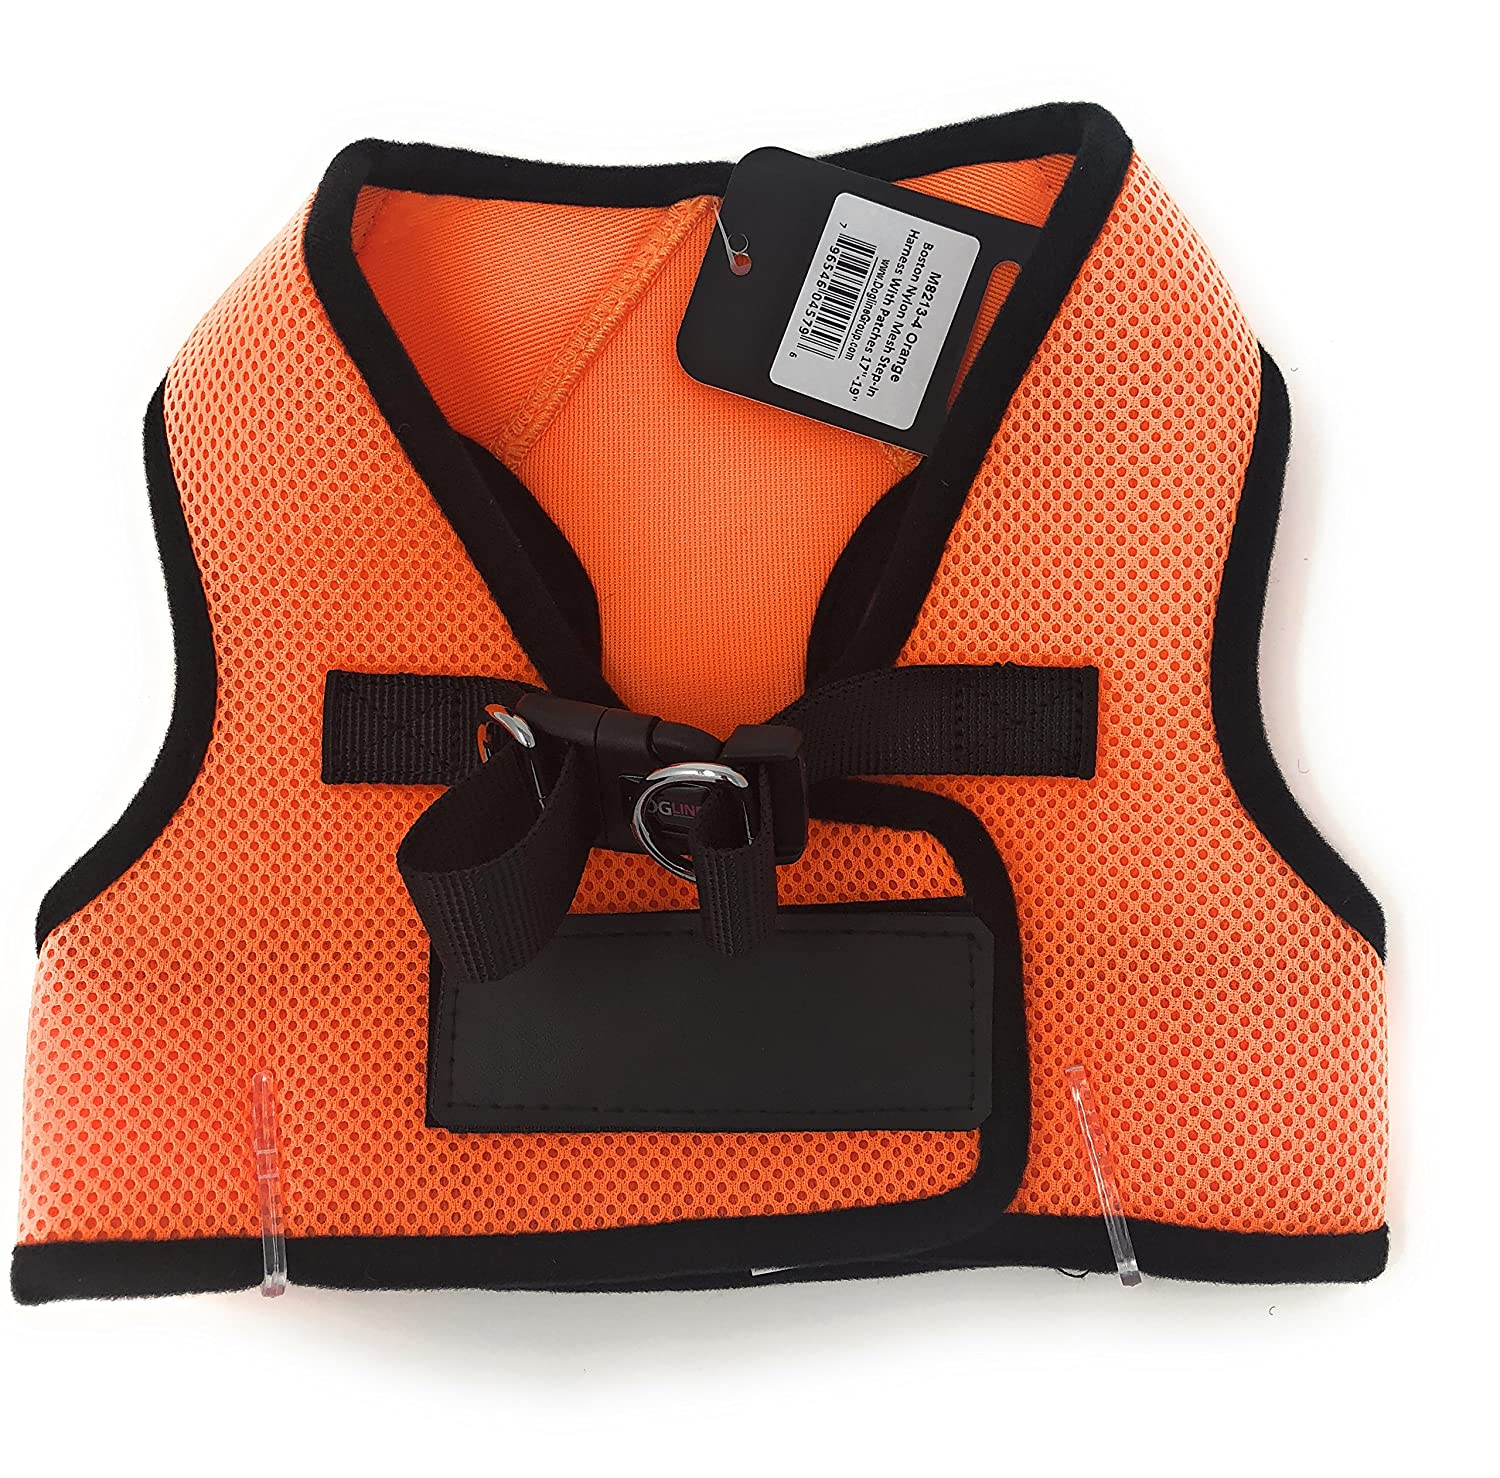 Dogline Mesh Harness Vest   Harness with Patches 17-19 in   orange